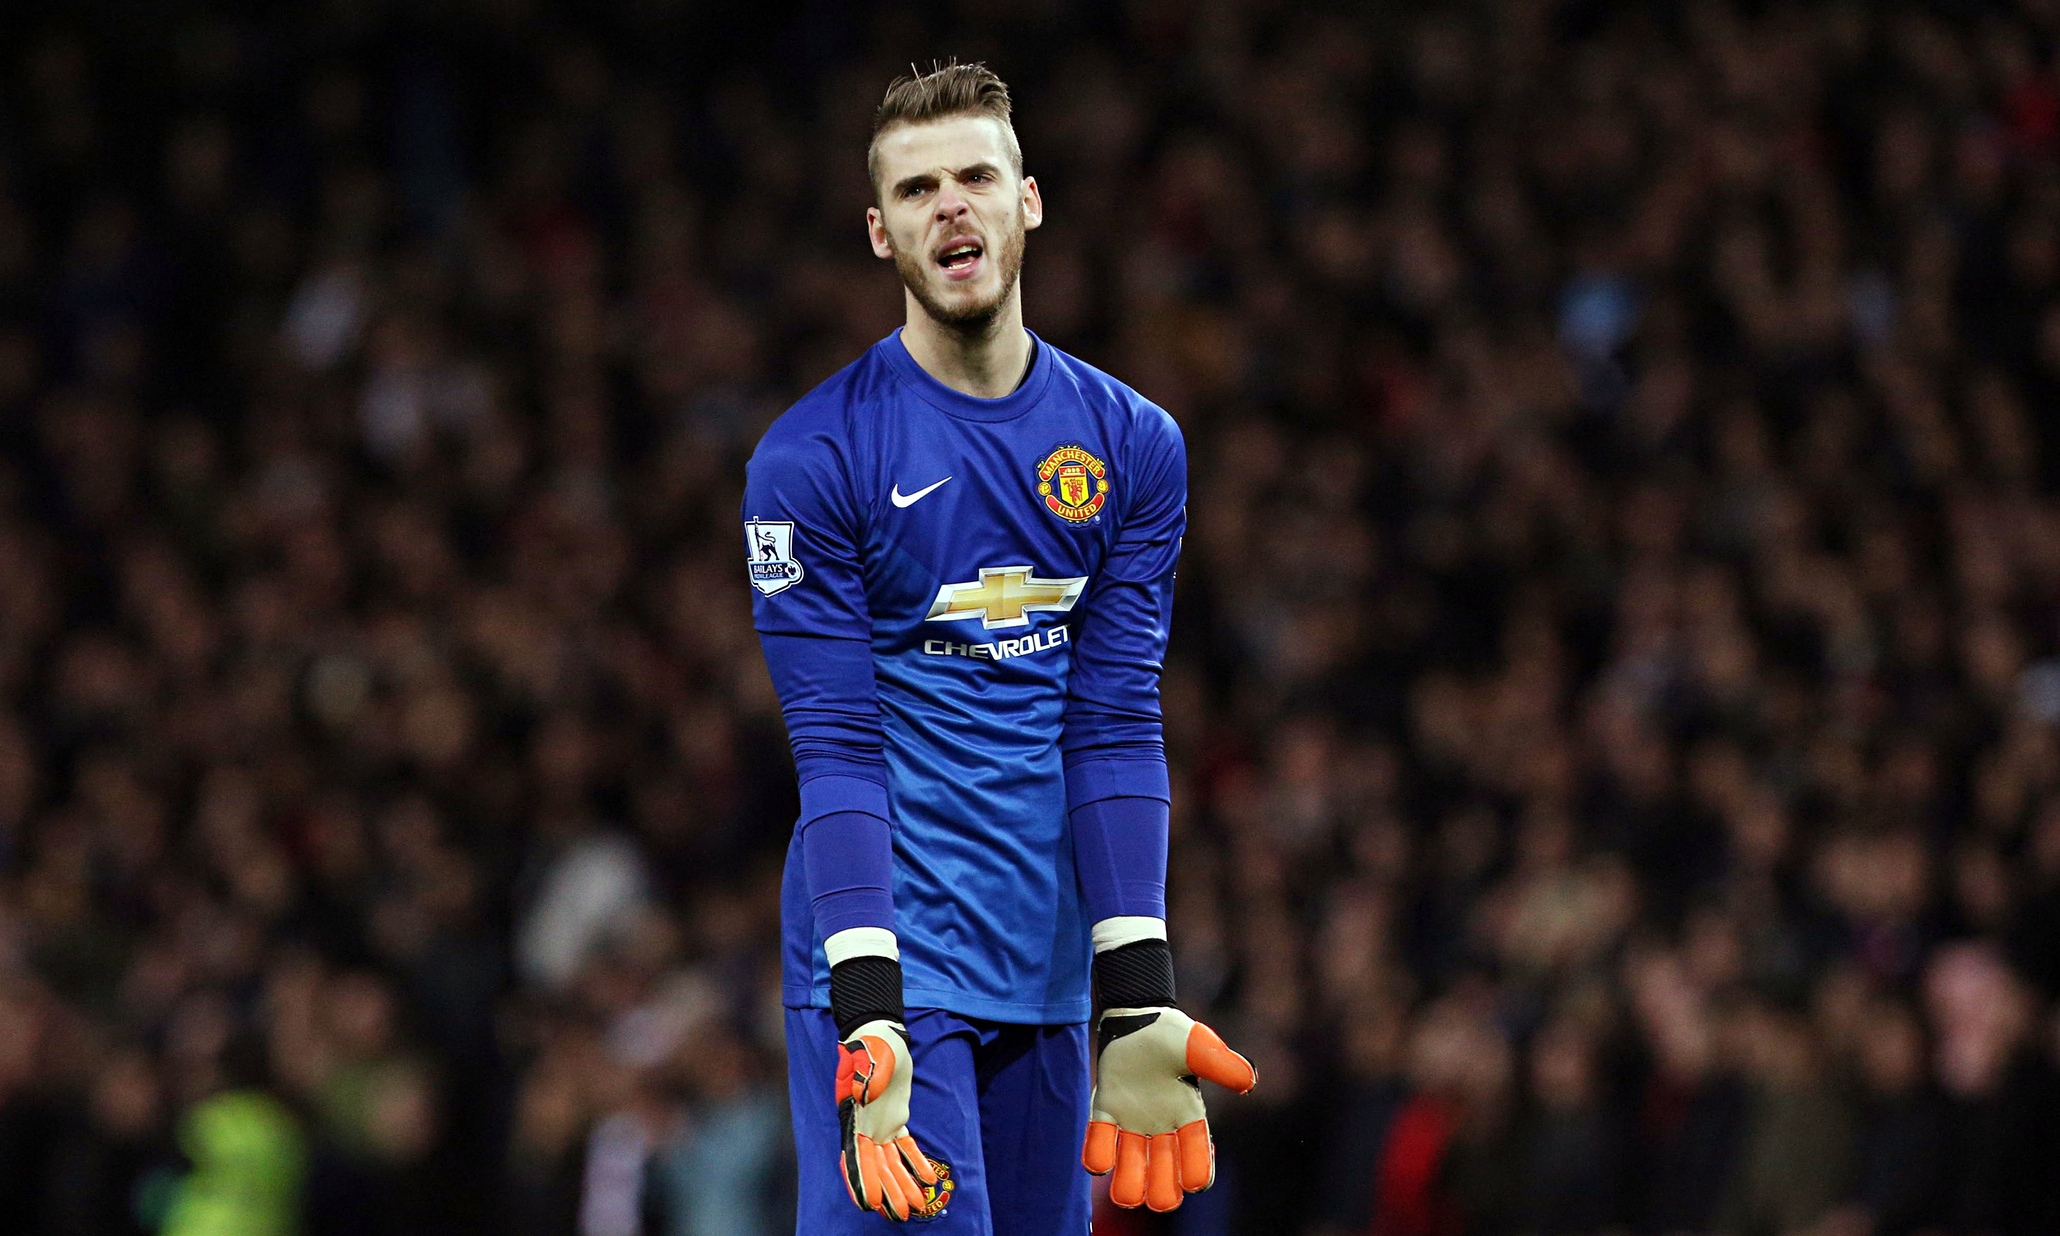 David De Gea has been benched all of 2015.